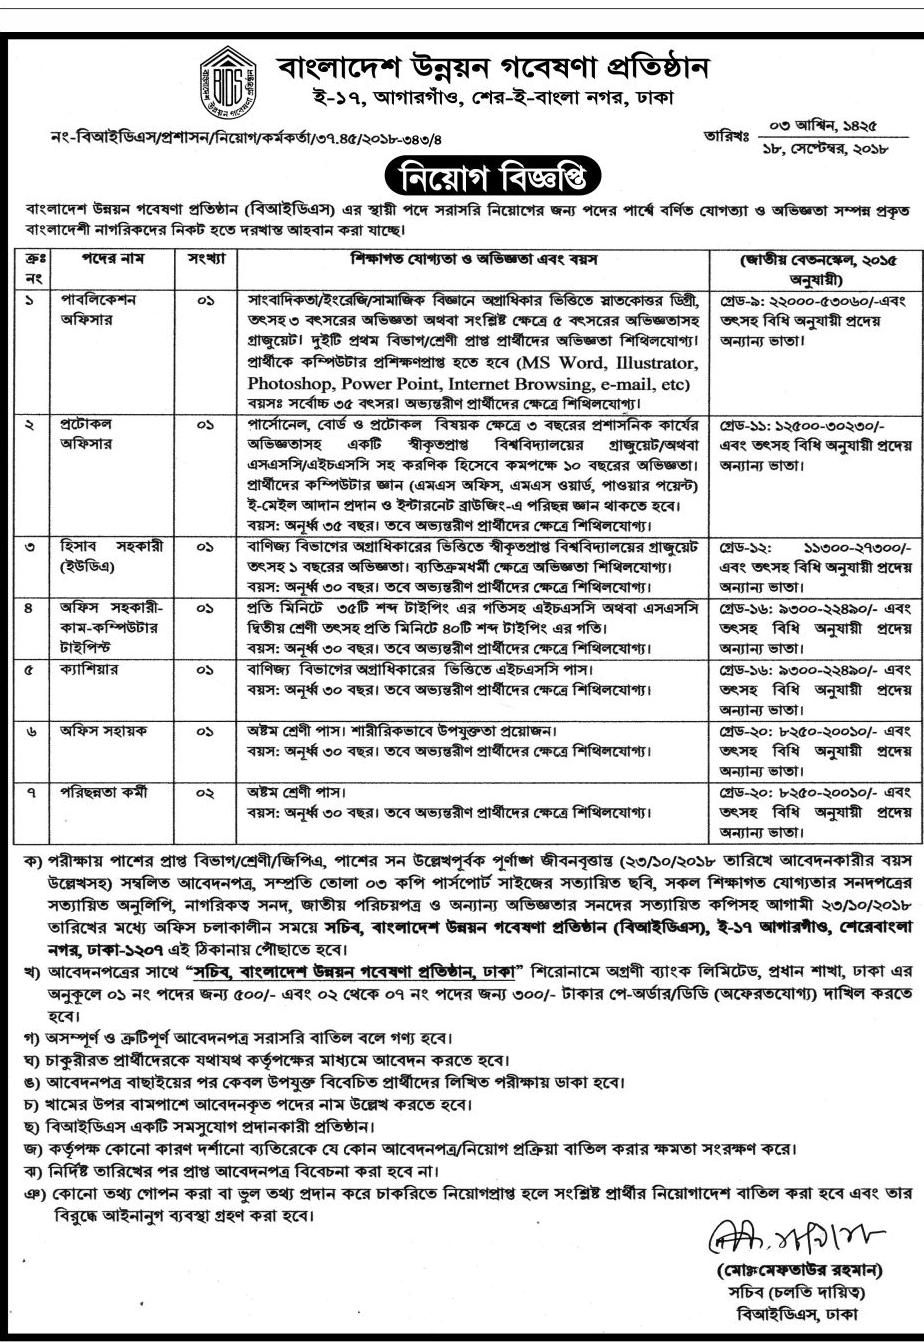 Bangladesh Institute of Development Studies Job Circular 2018